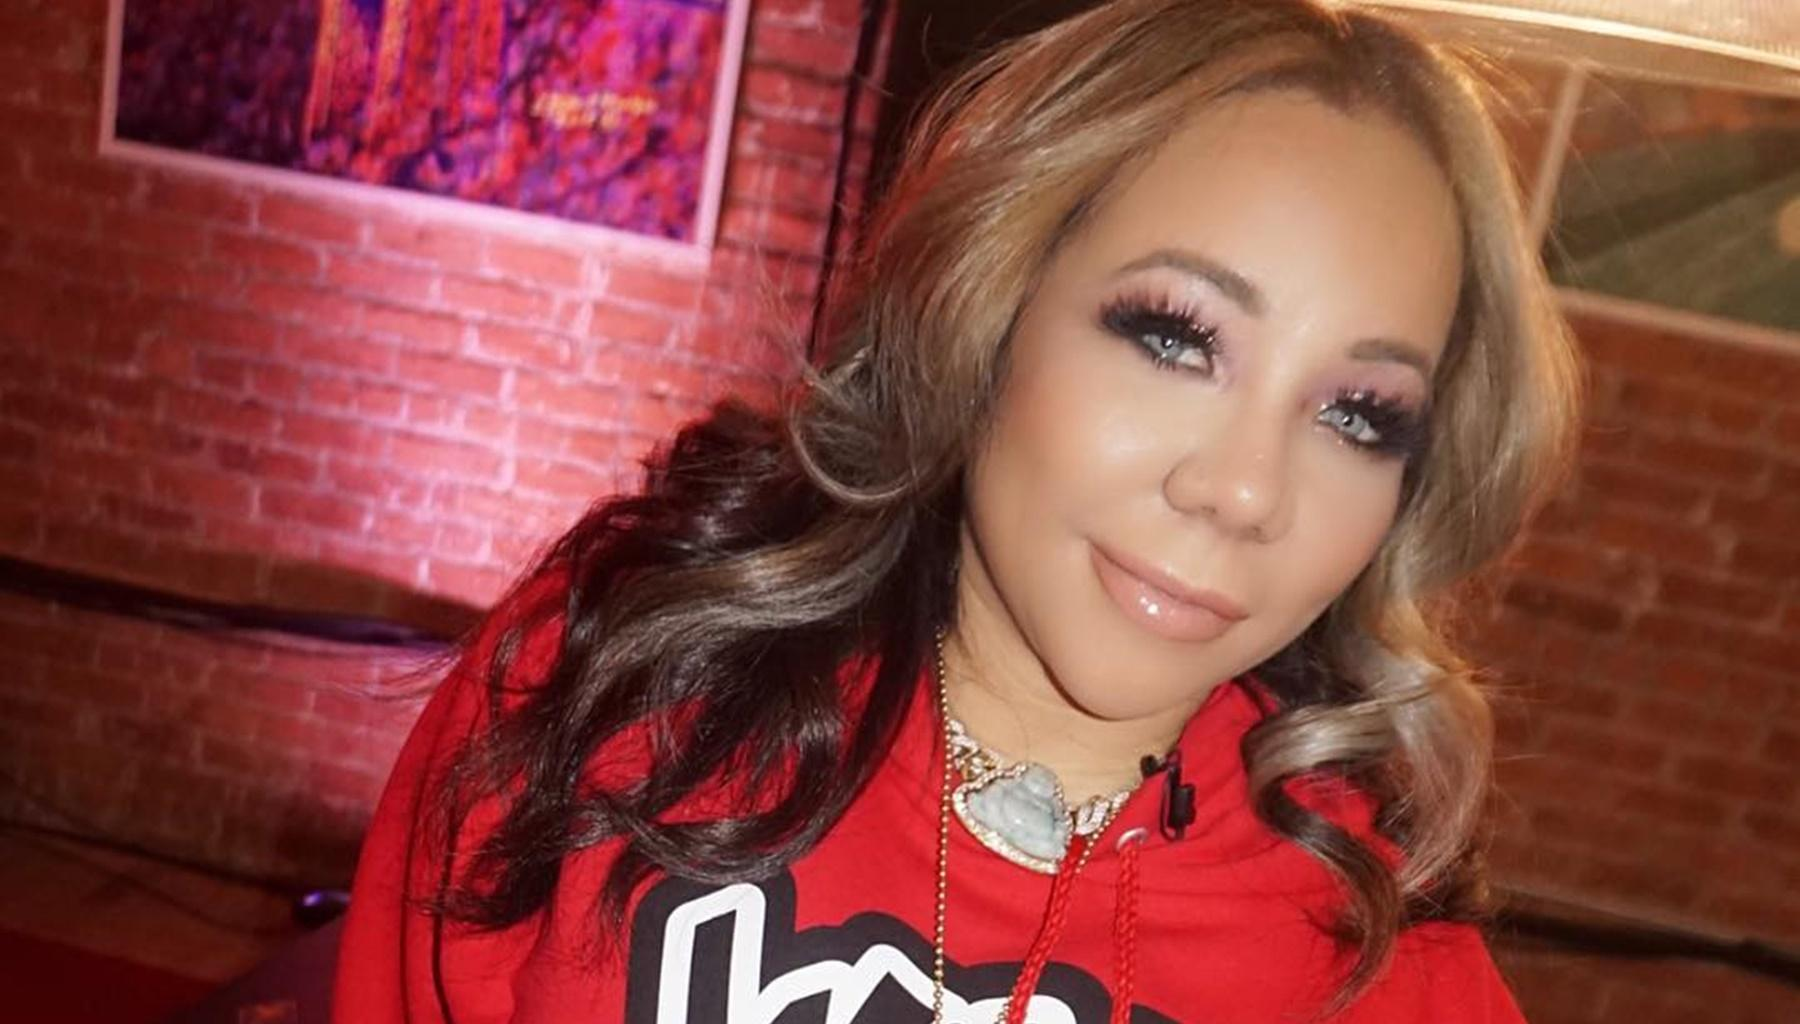 Tiny Harris Shares Great Memories Of A Sold Out Arena For The Great Xscape Tour